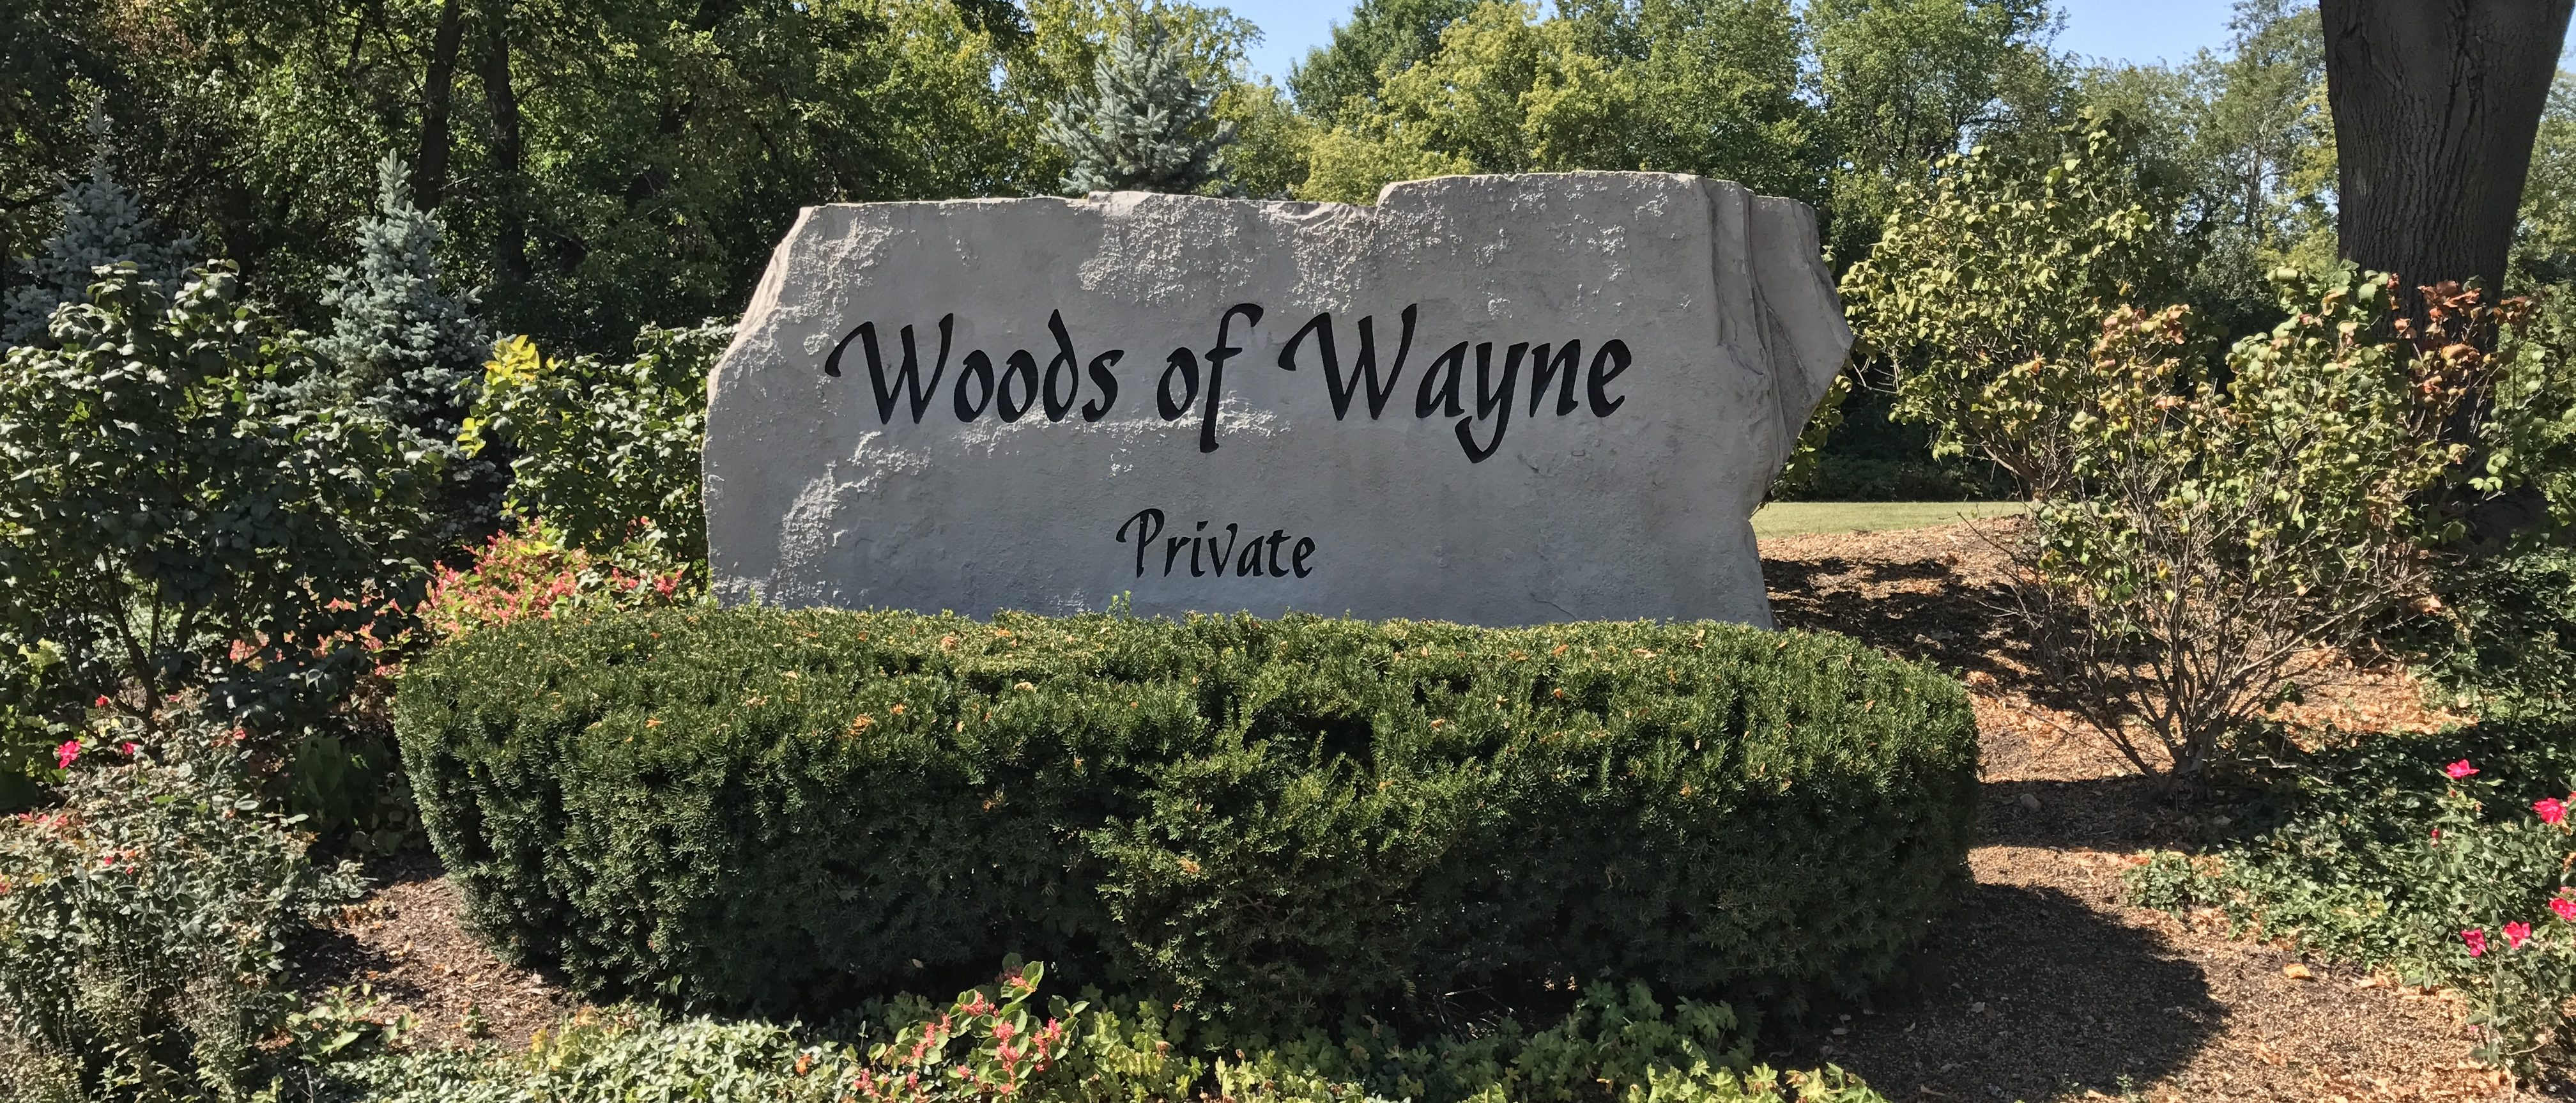 Woods of wayne